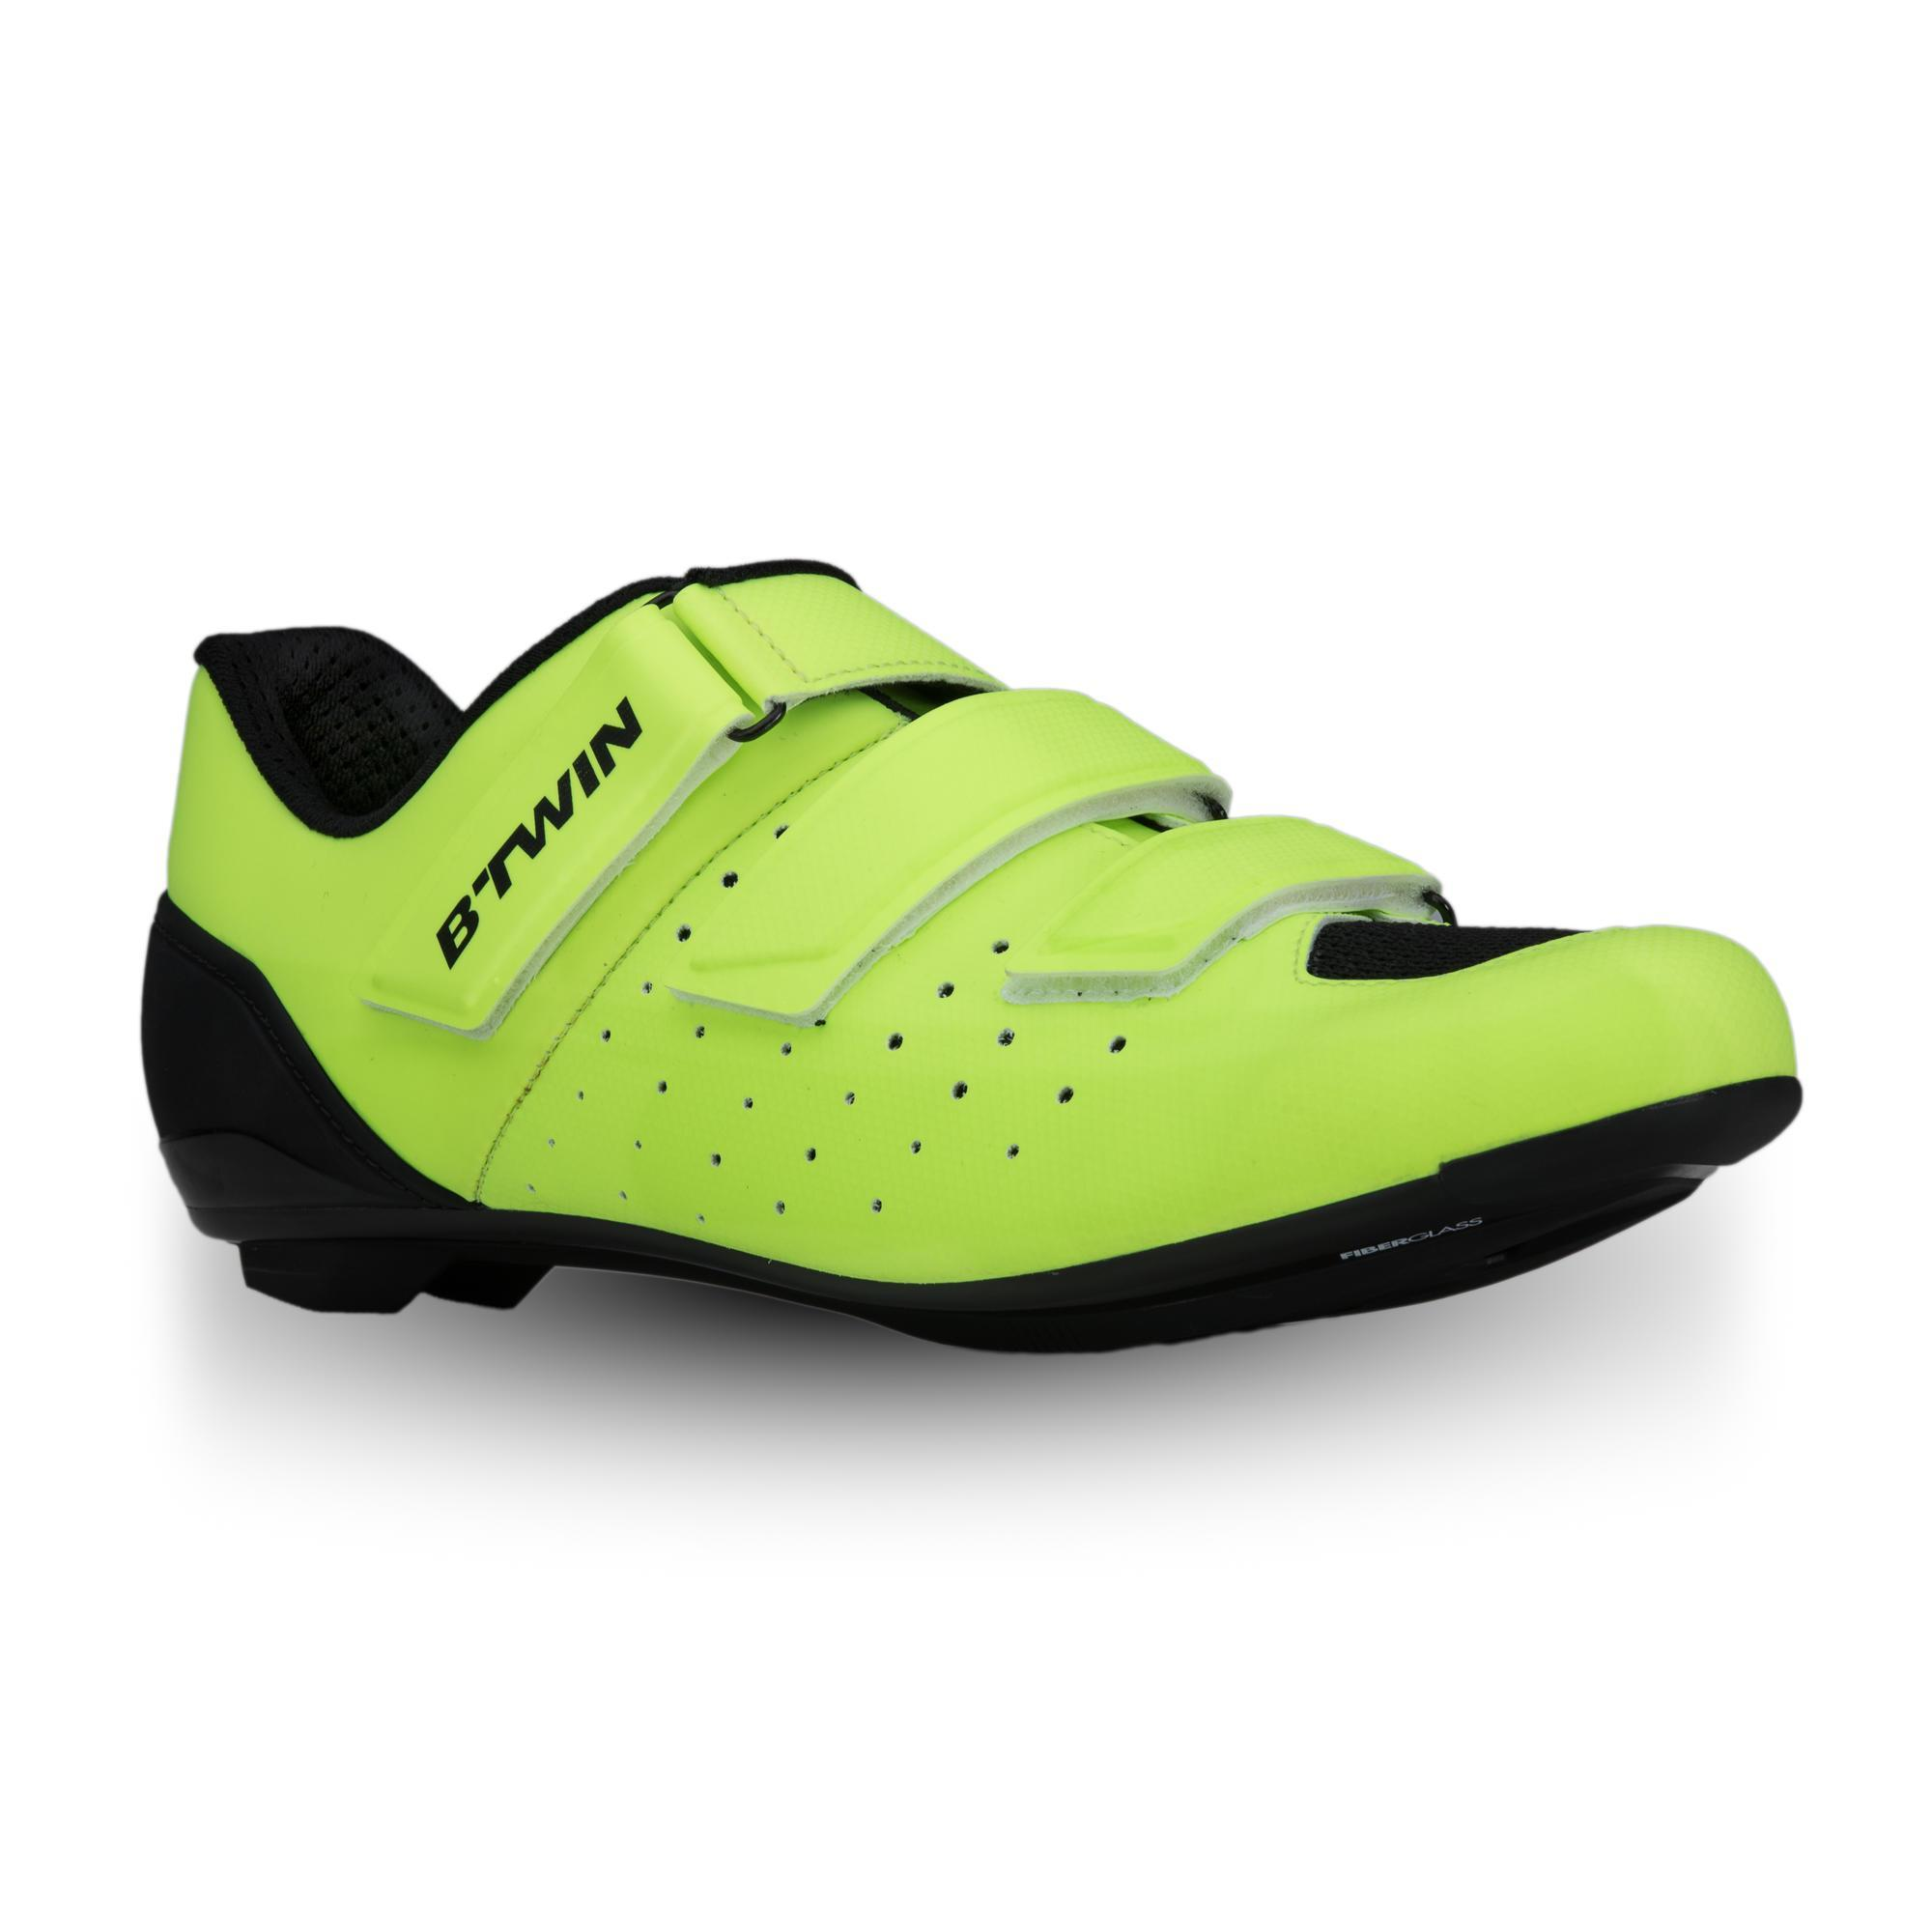 Chaussures vélo route Cyclosport 500 JAUNE FLUO - Van rysel